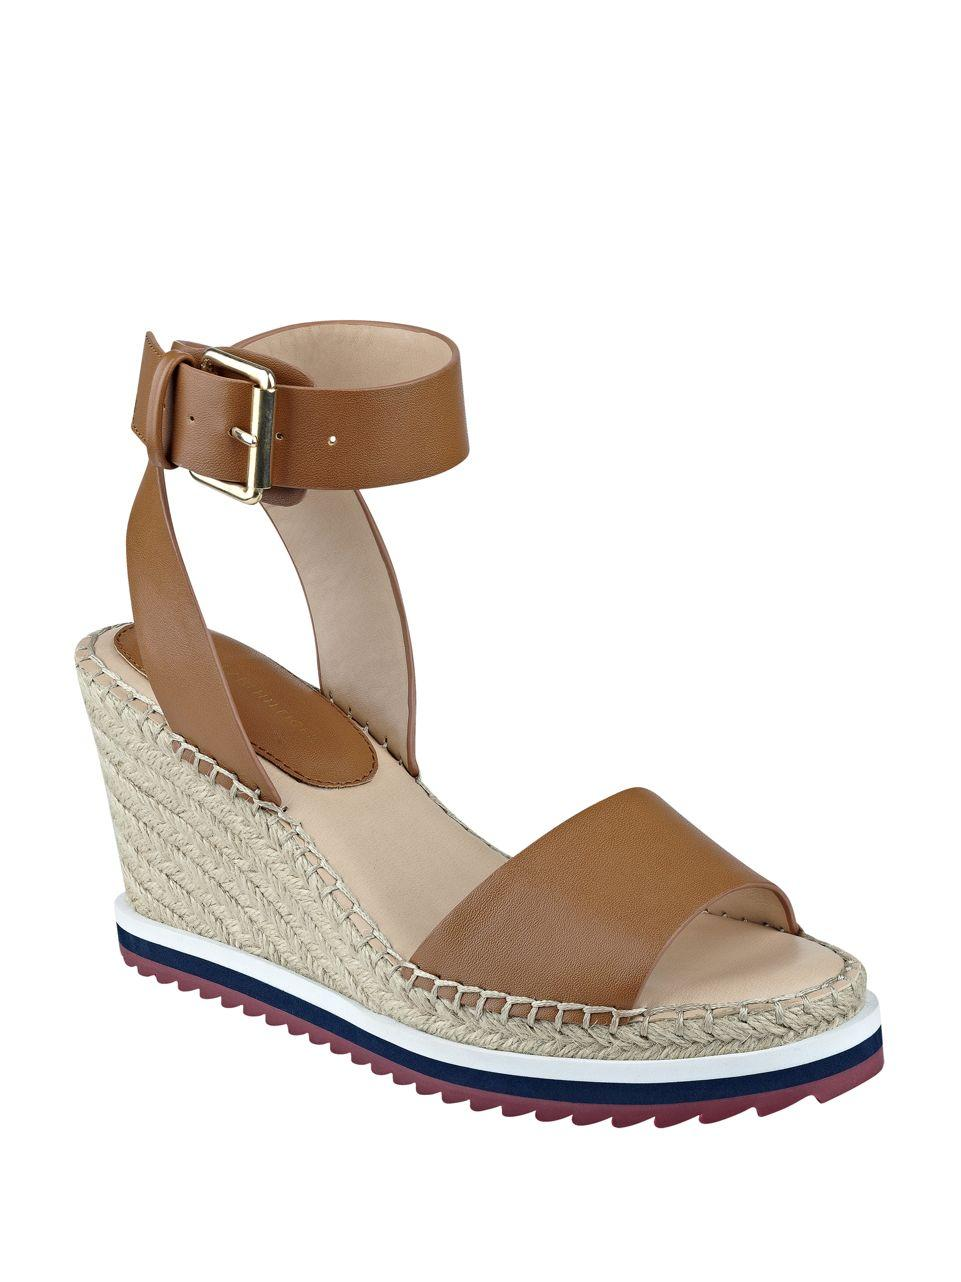 tommy hilfiger yaslin wedge espadrilles in brown lyst. Black Bedroom Furniture Sets. Home Design Ideas